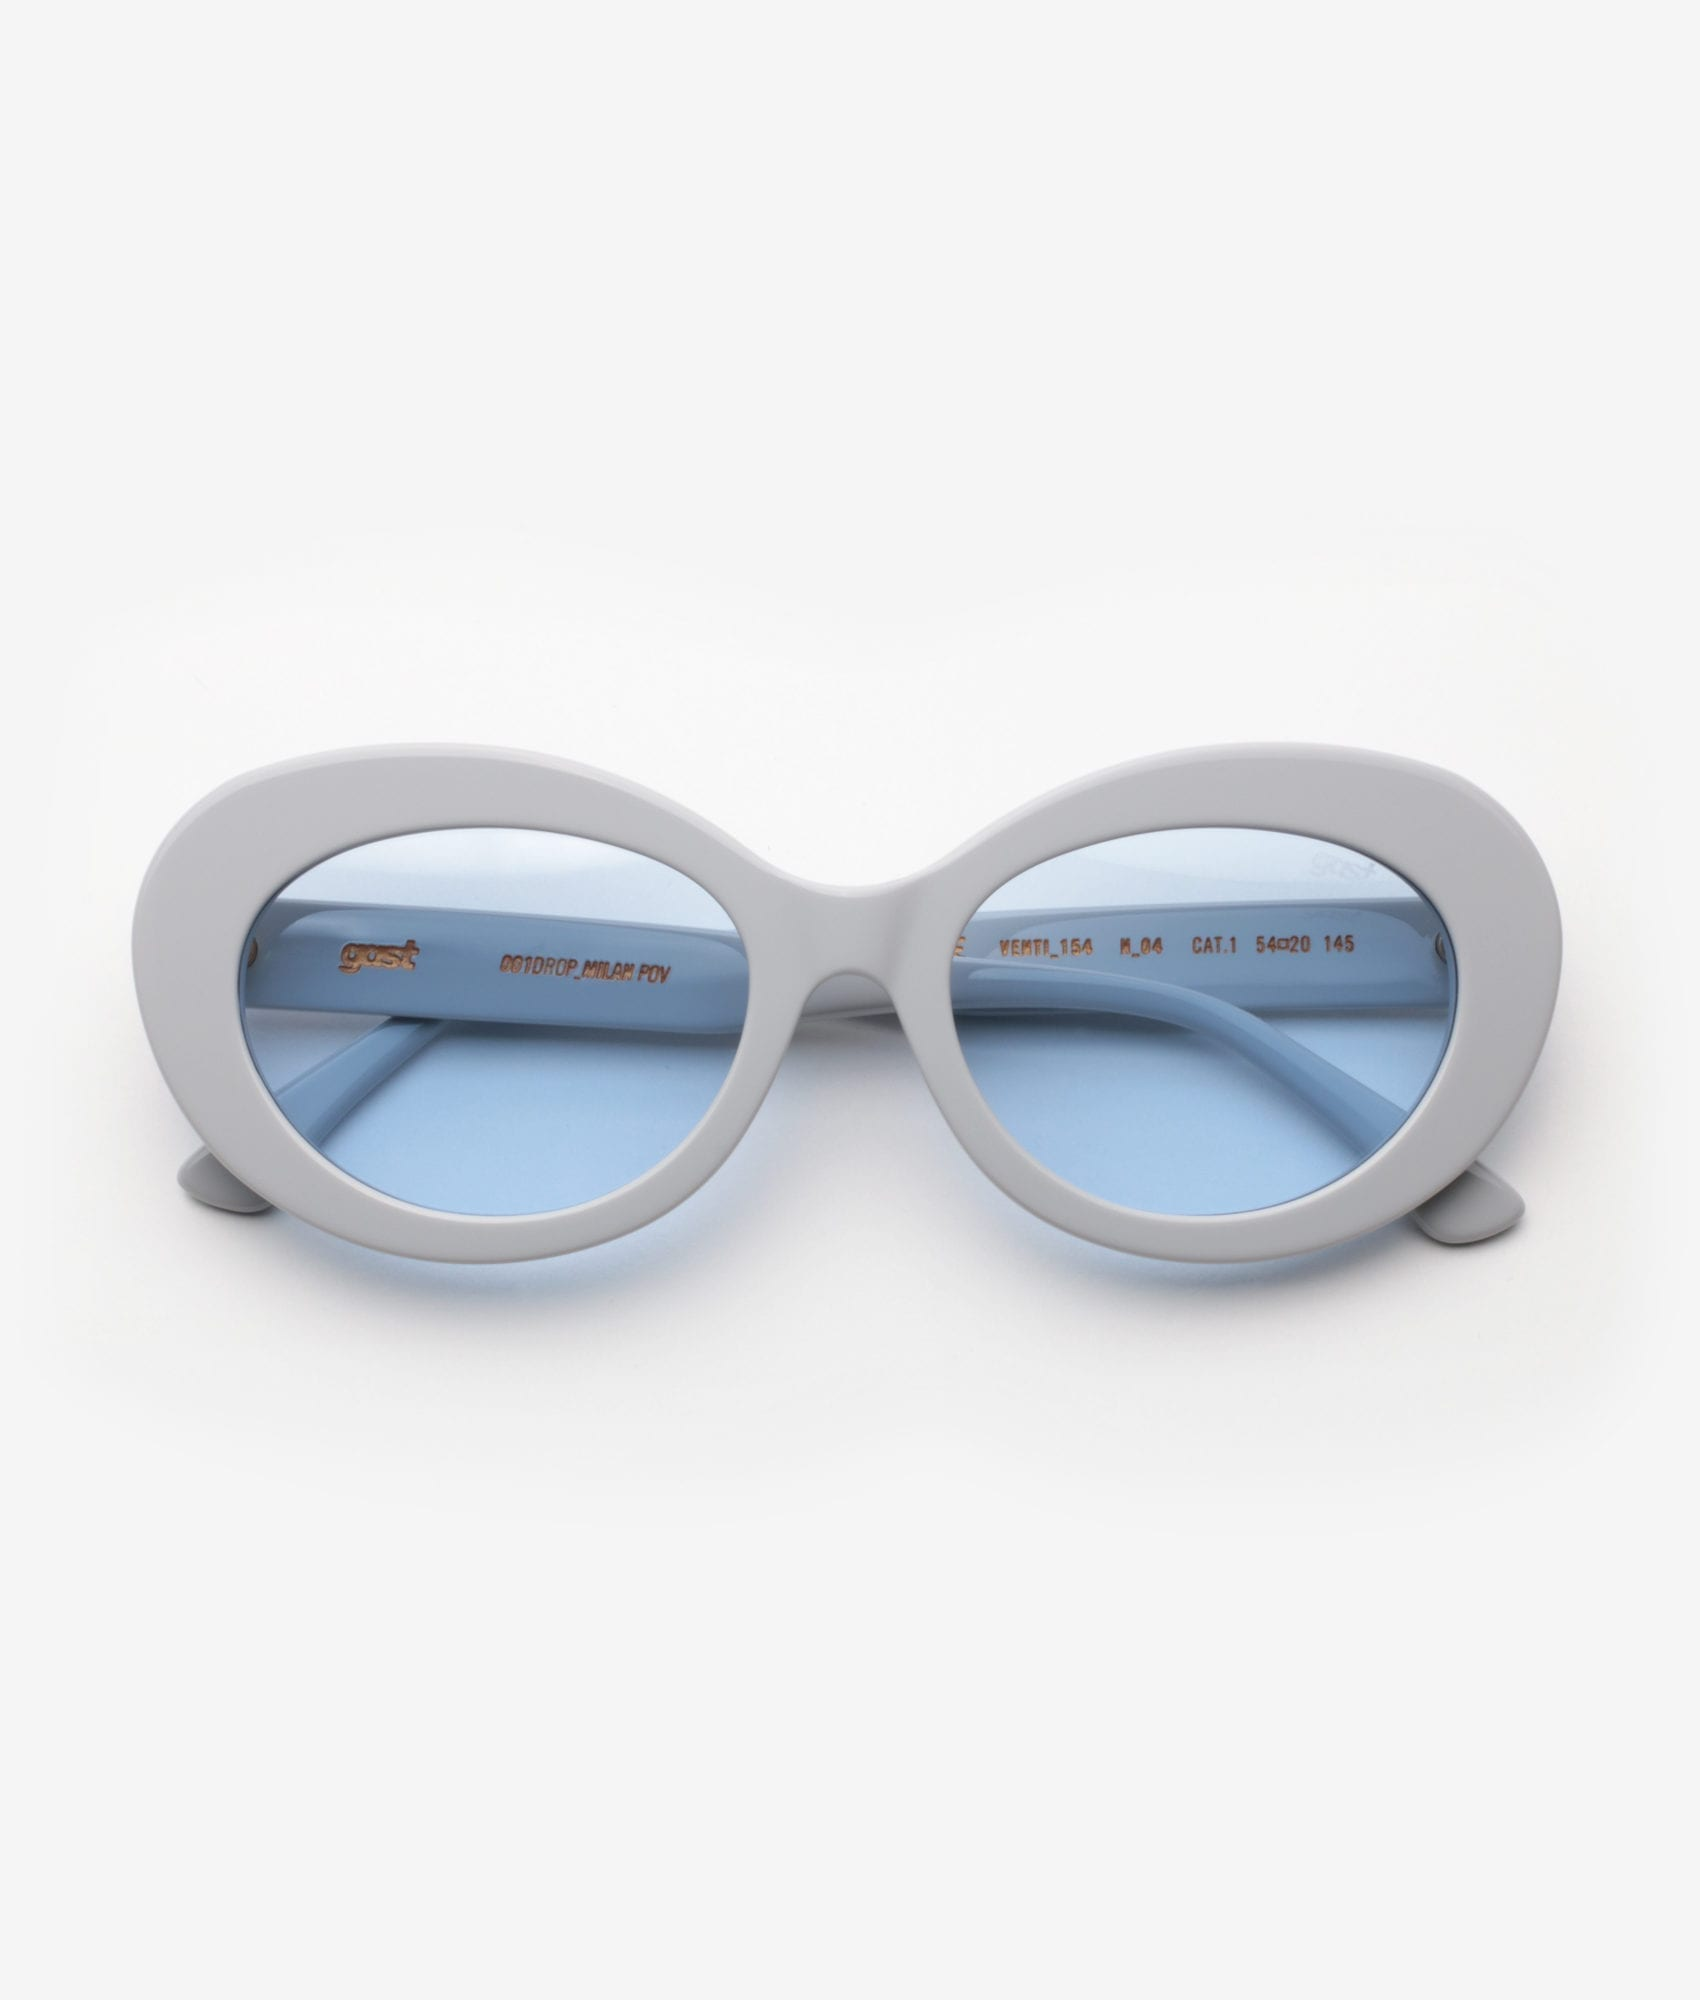 VENTI 154 Blue Gast Sunglasses